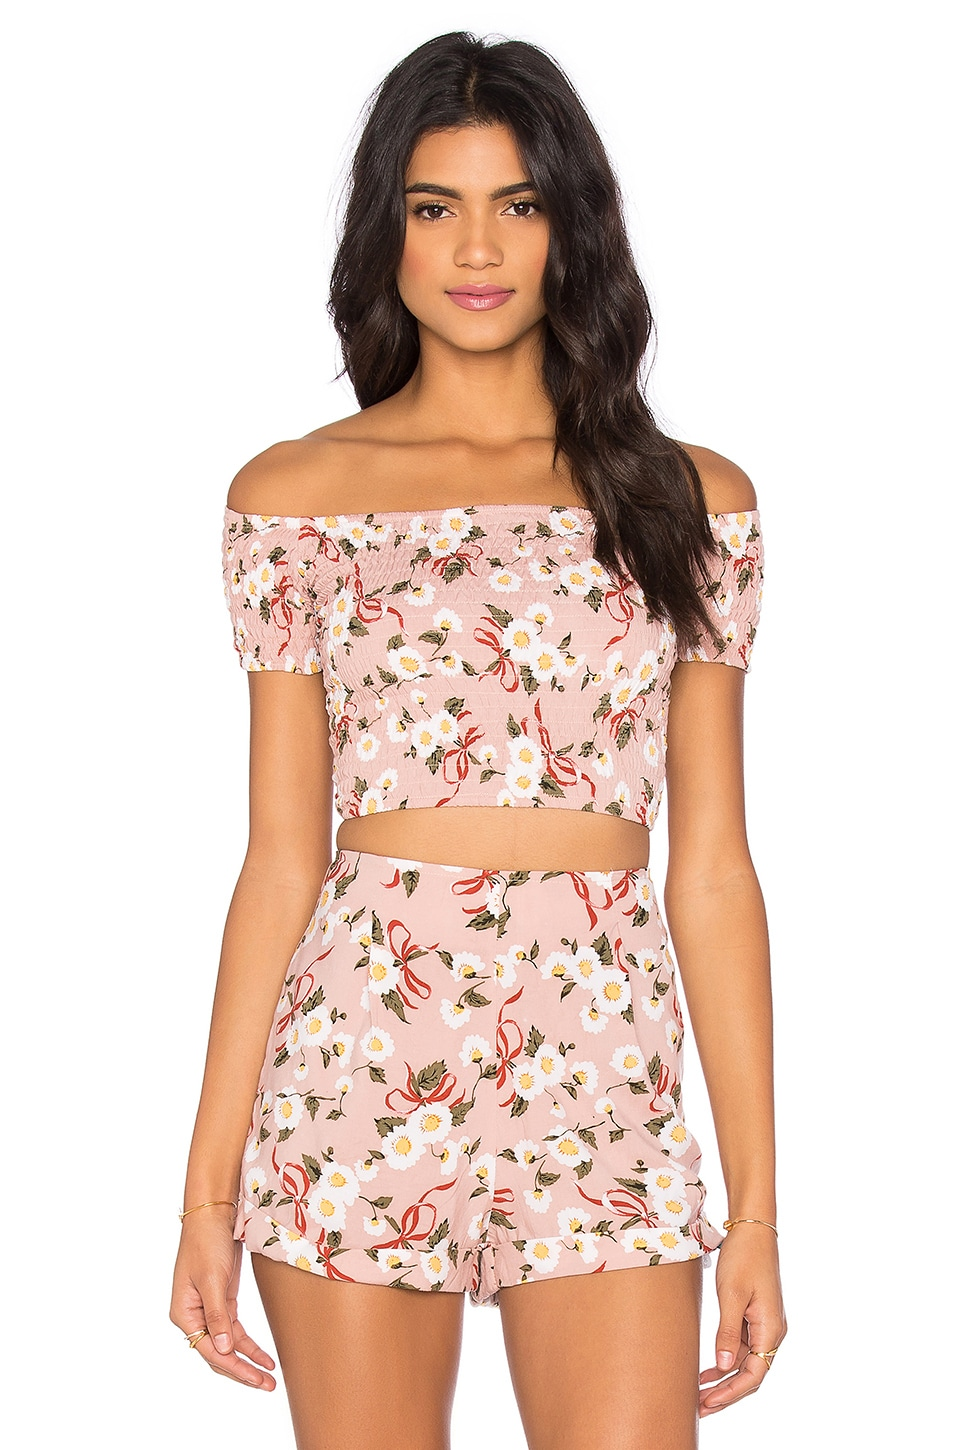 Motel Maribelle Top in Pink Daisy Ribbon